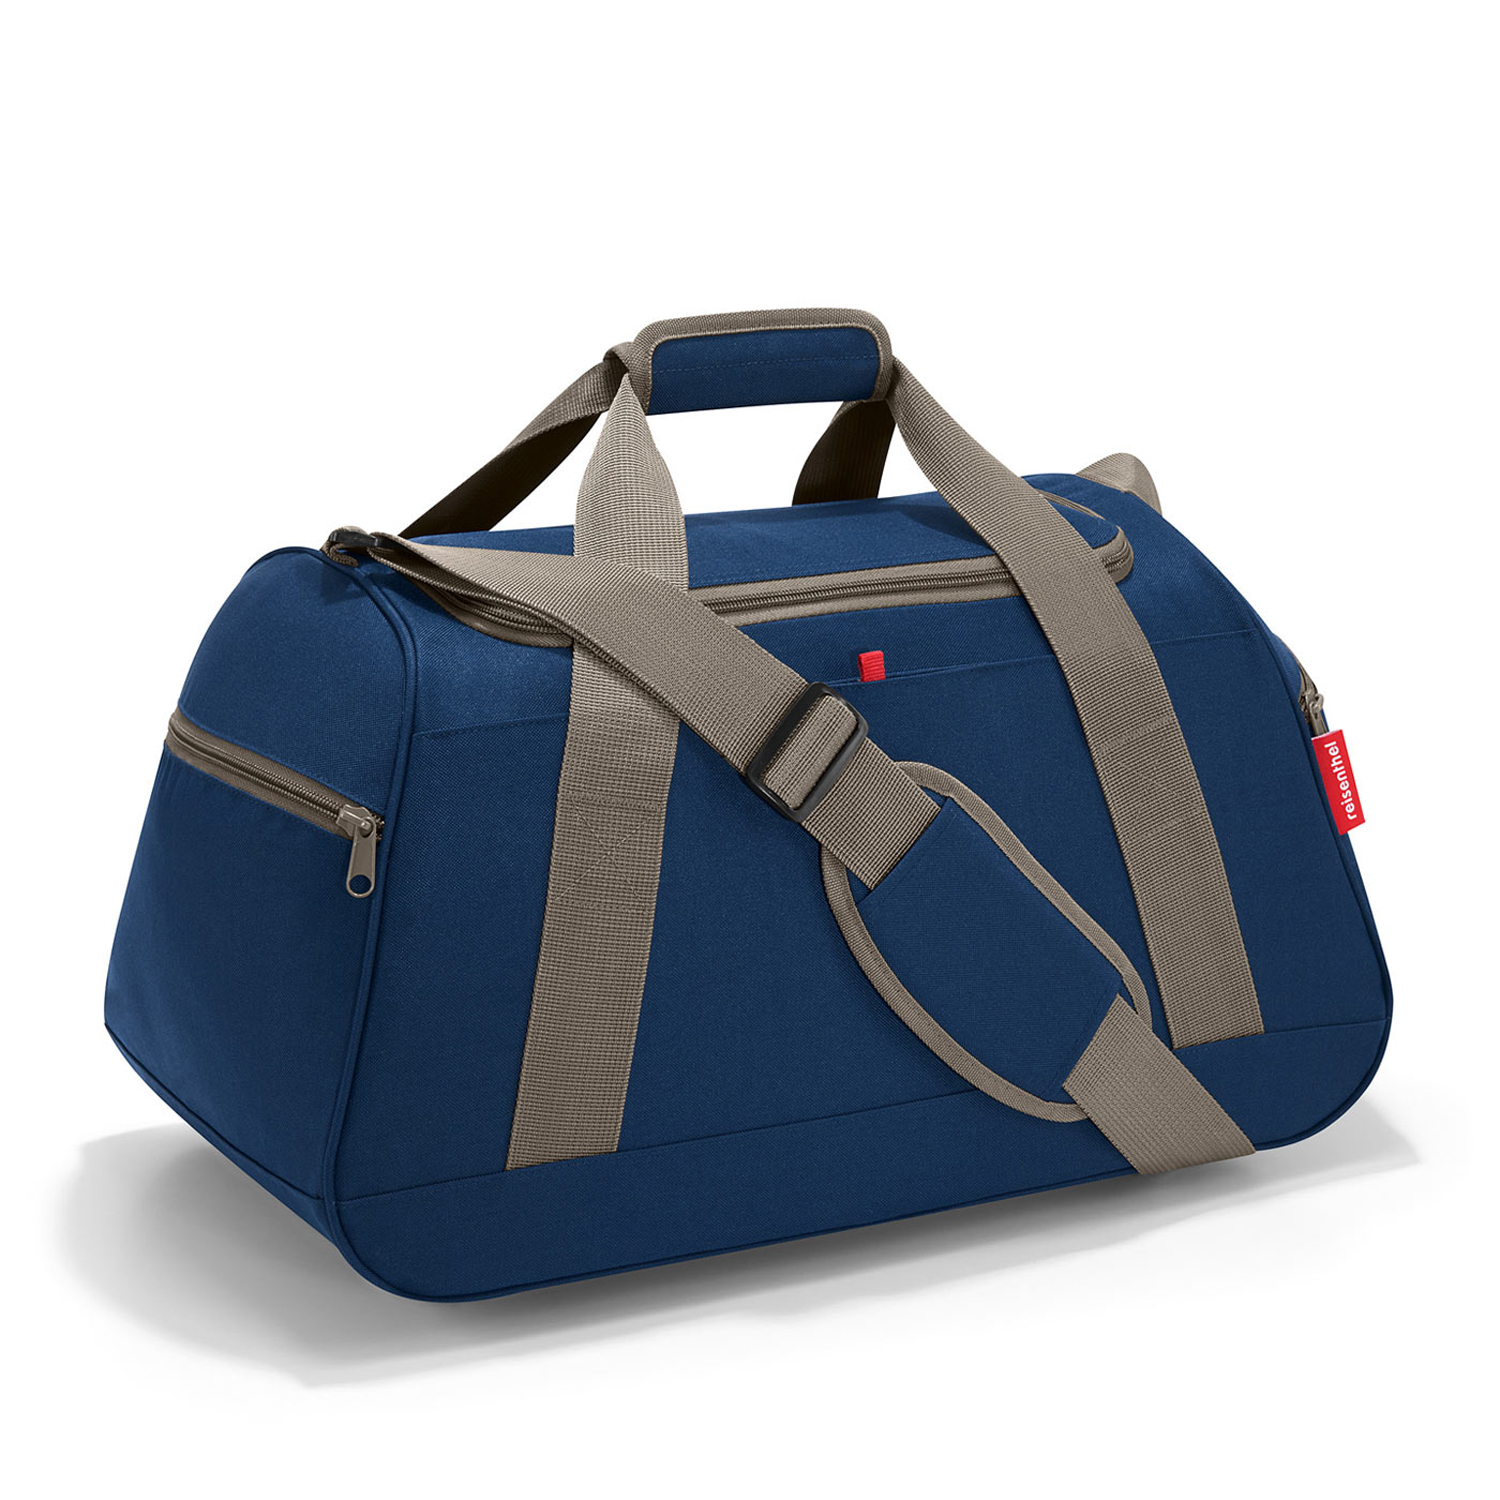 Reisenthel Sporttasche Activitybag Dark Blue